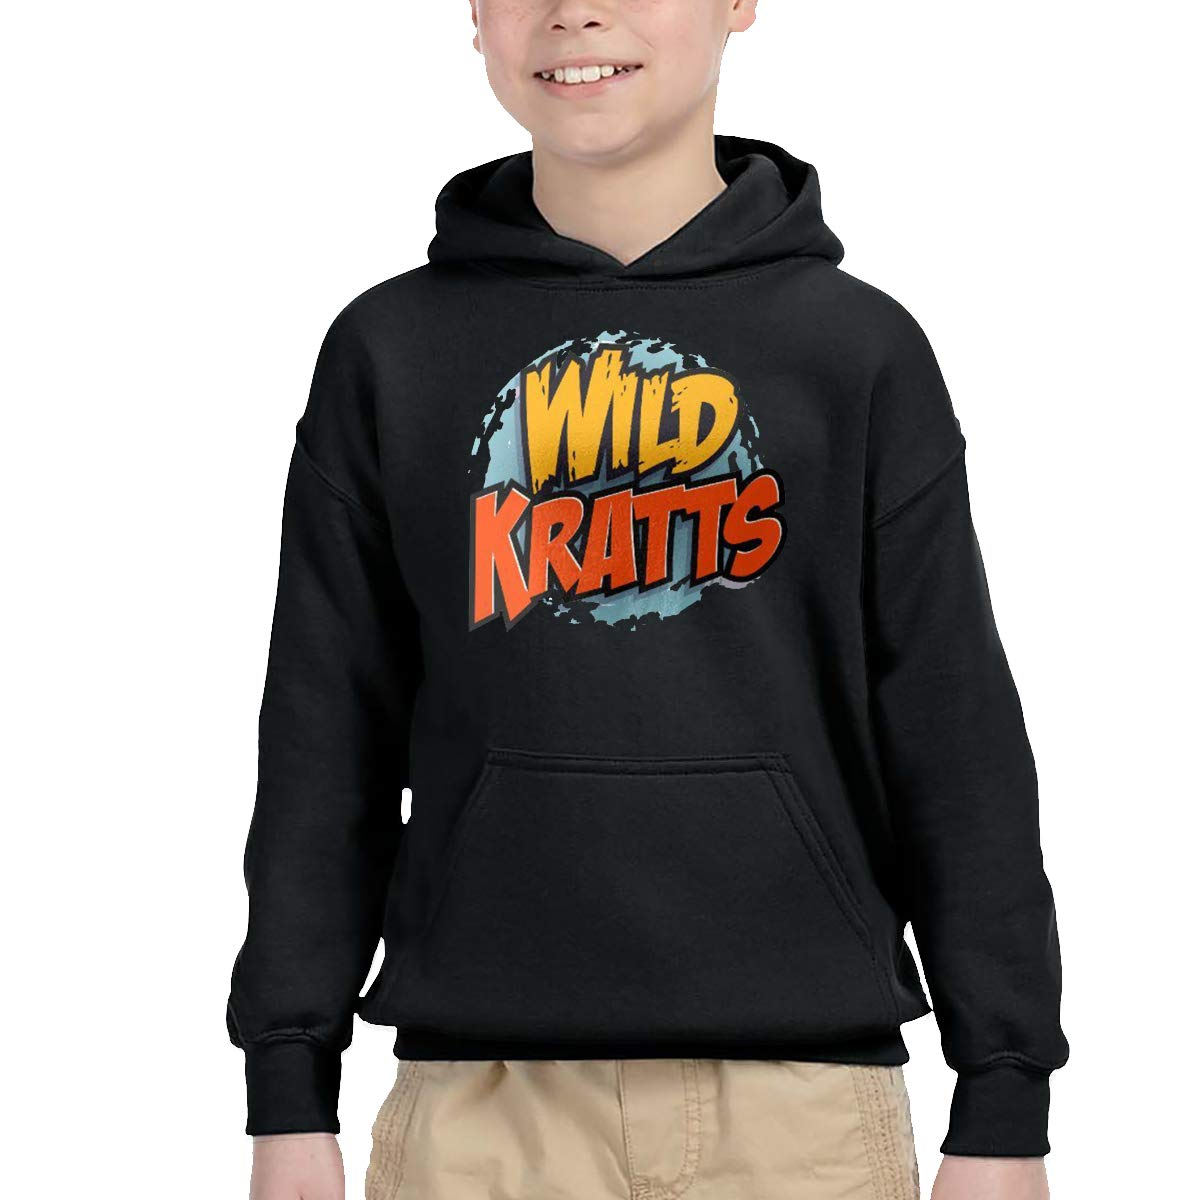 Rizhaoyue 2-6 Year Old Childrens Hooded Pocket Sweater Personality Street Trend Creation Wild Kratts Logo Black